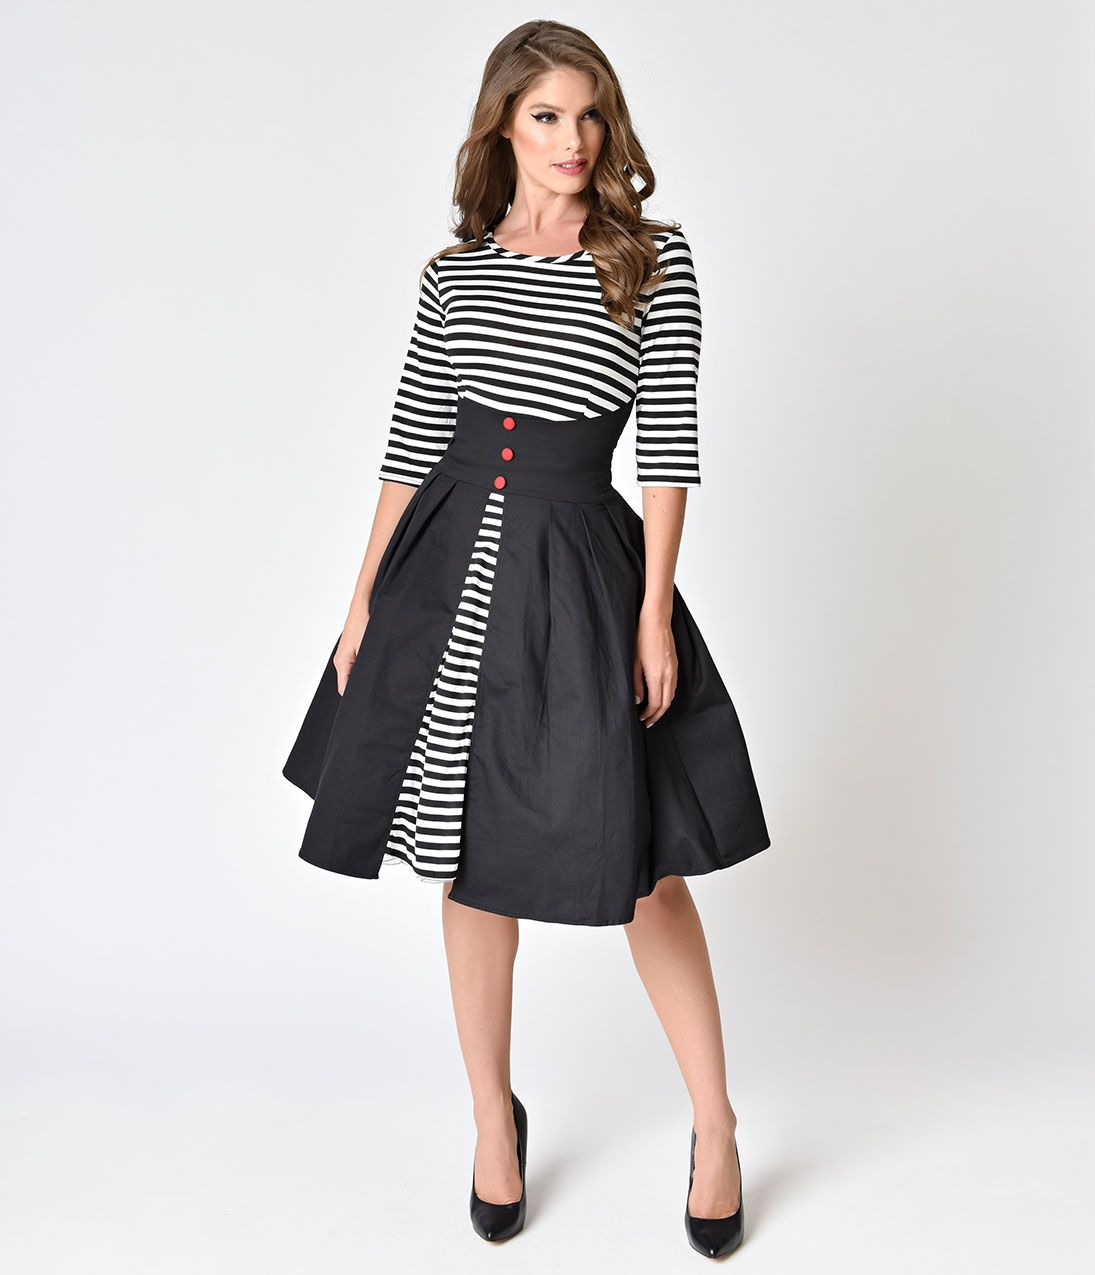 eb8a0833bd9 Retro Style White   Black Striped with Red Heart Patch Shift Dress ...